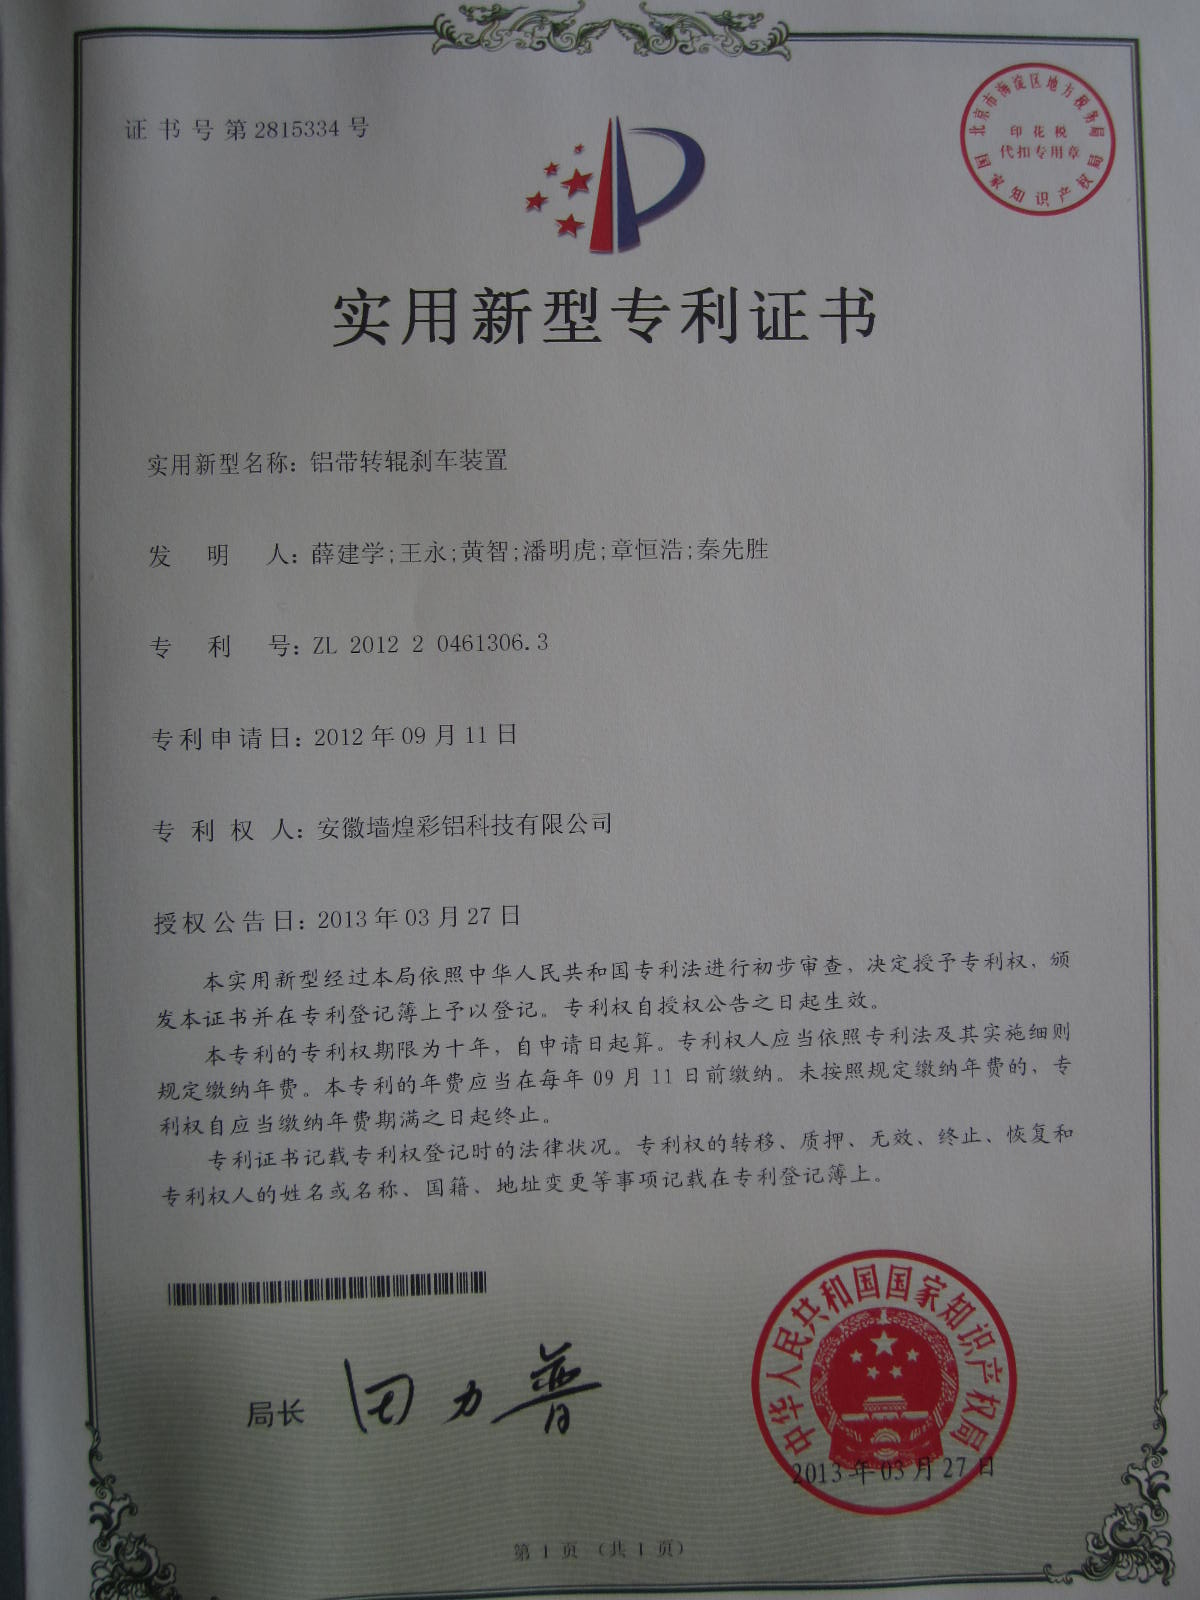 LETTER of PATENT 4